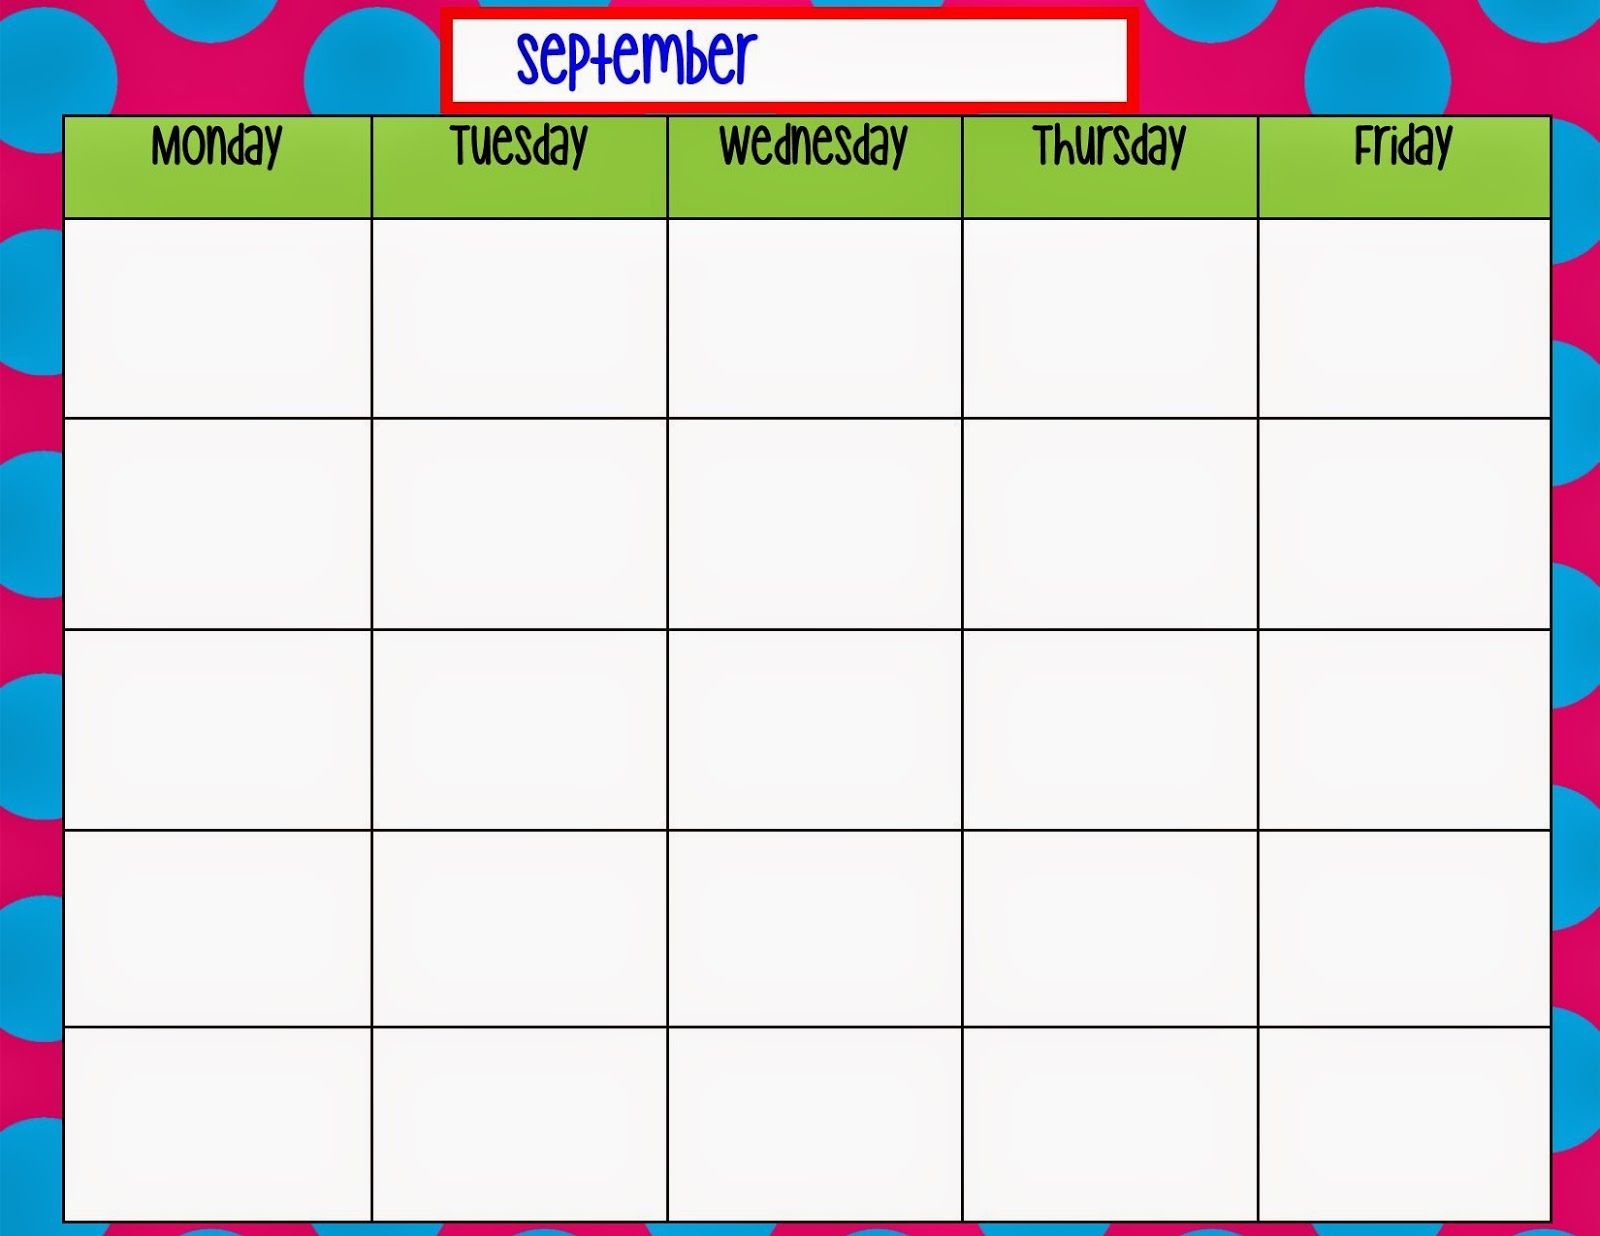 Monday Through Friday Calendar Template | Weekly Calendar pertaining to Monday Through Friday Calendar Template Word